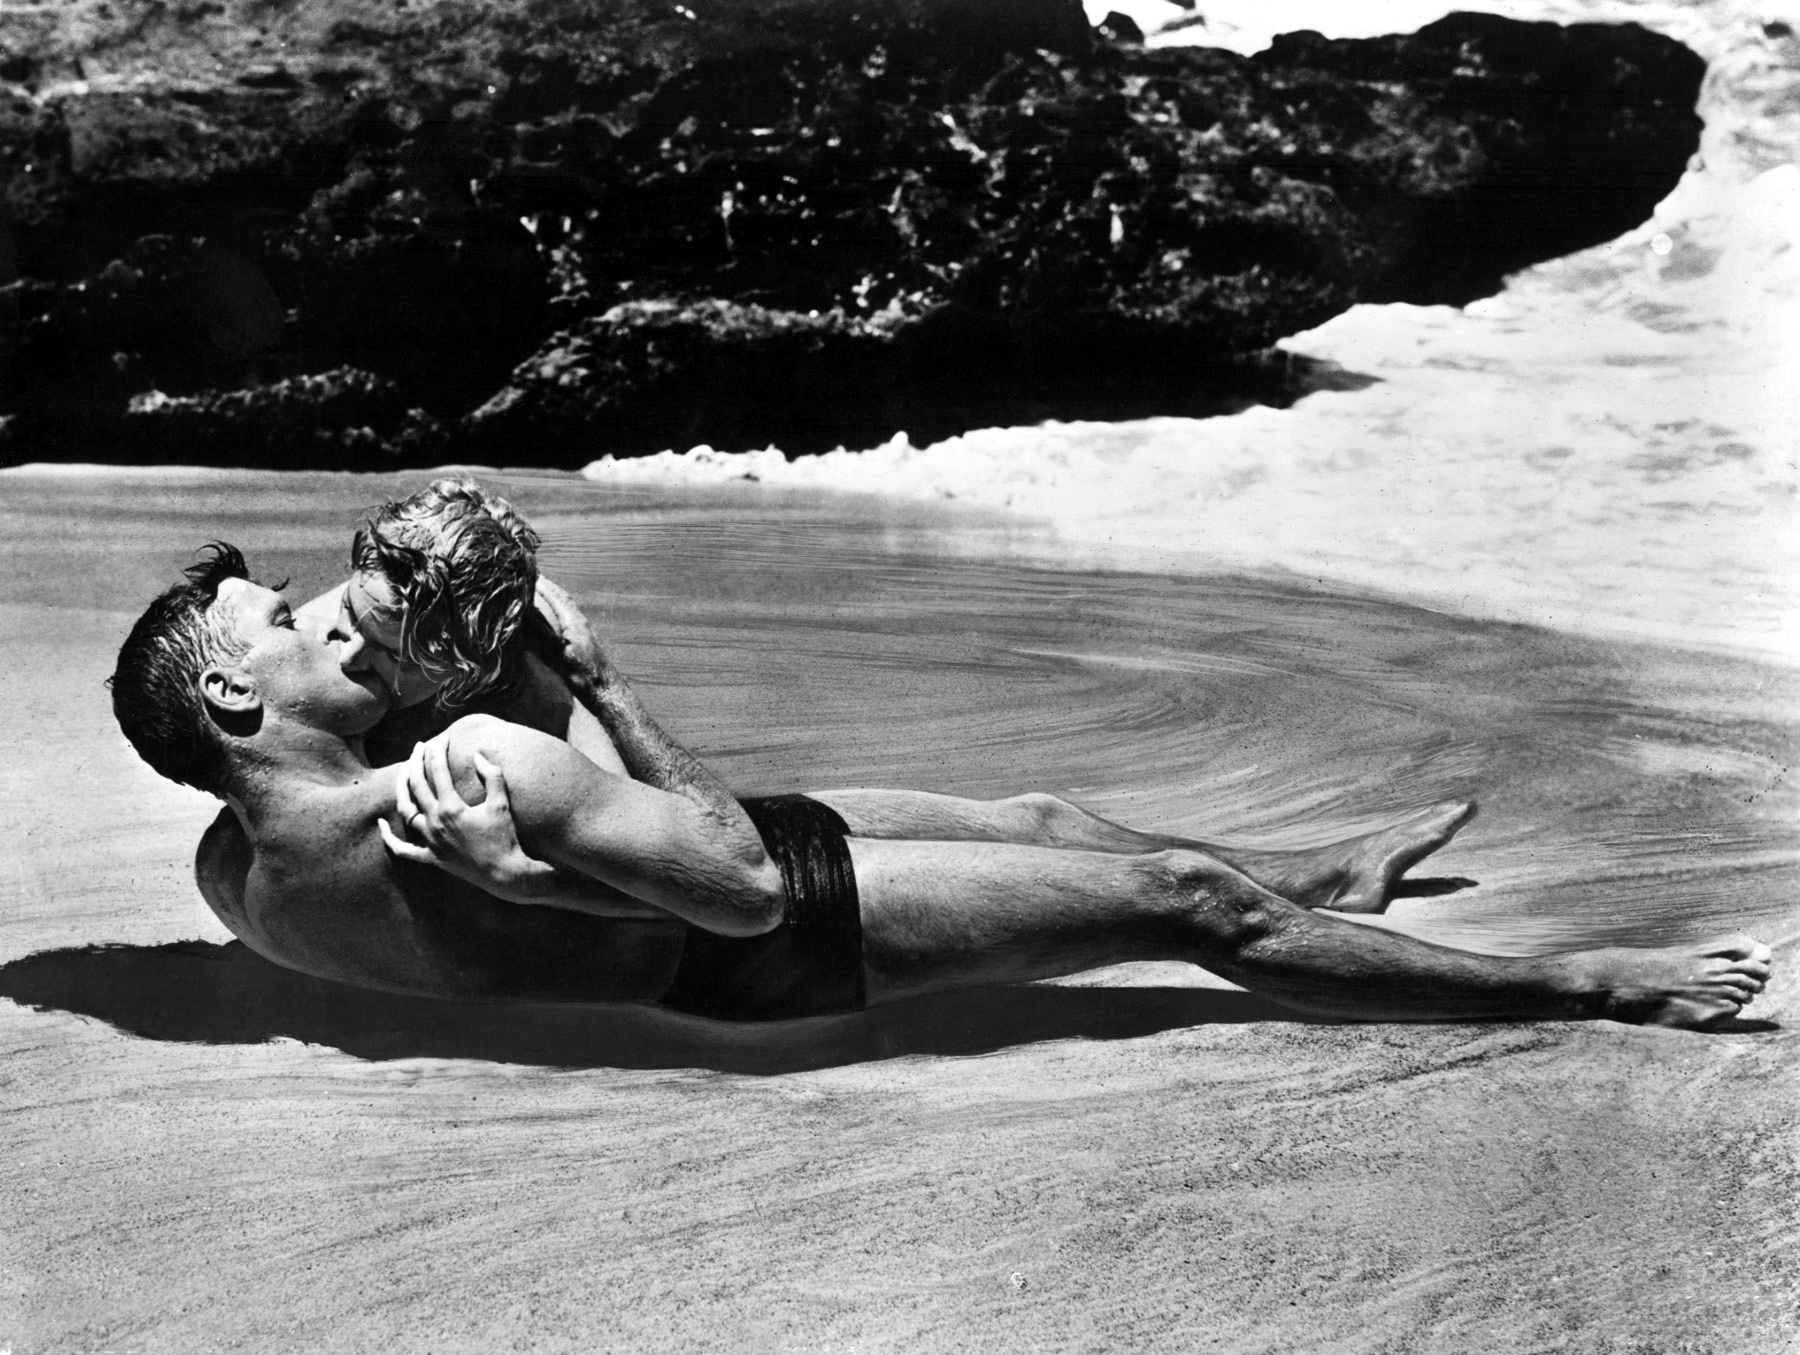 From Here To Eternity scene